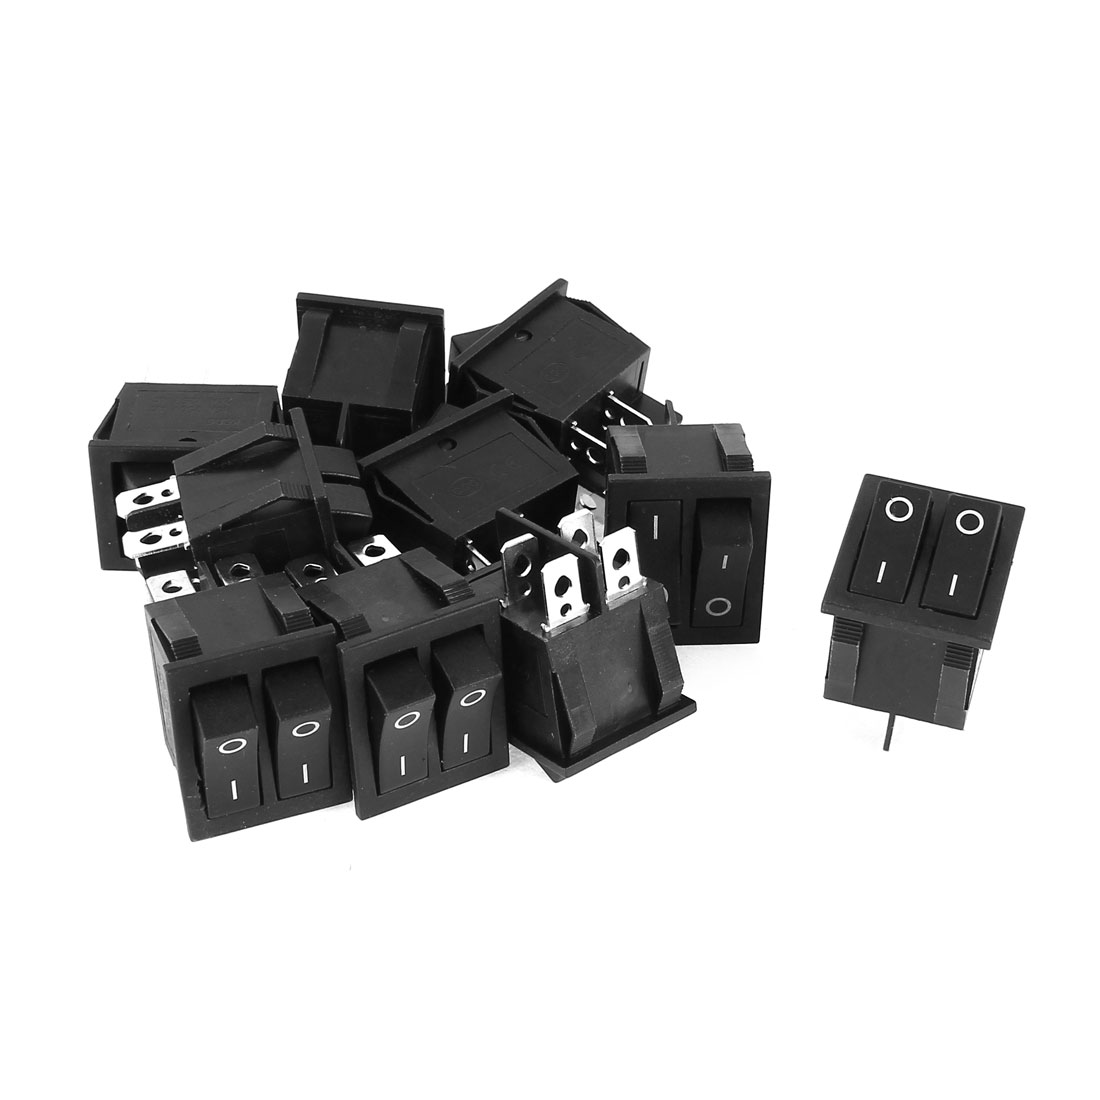 AC 250V 15A 125V 20A 4Pin Dual SPST ON/OFF 2-Position Rocker Switch Black 10 Pcs